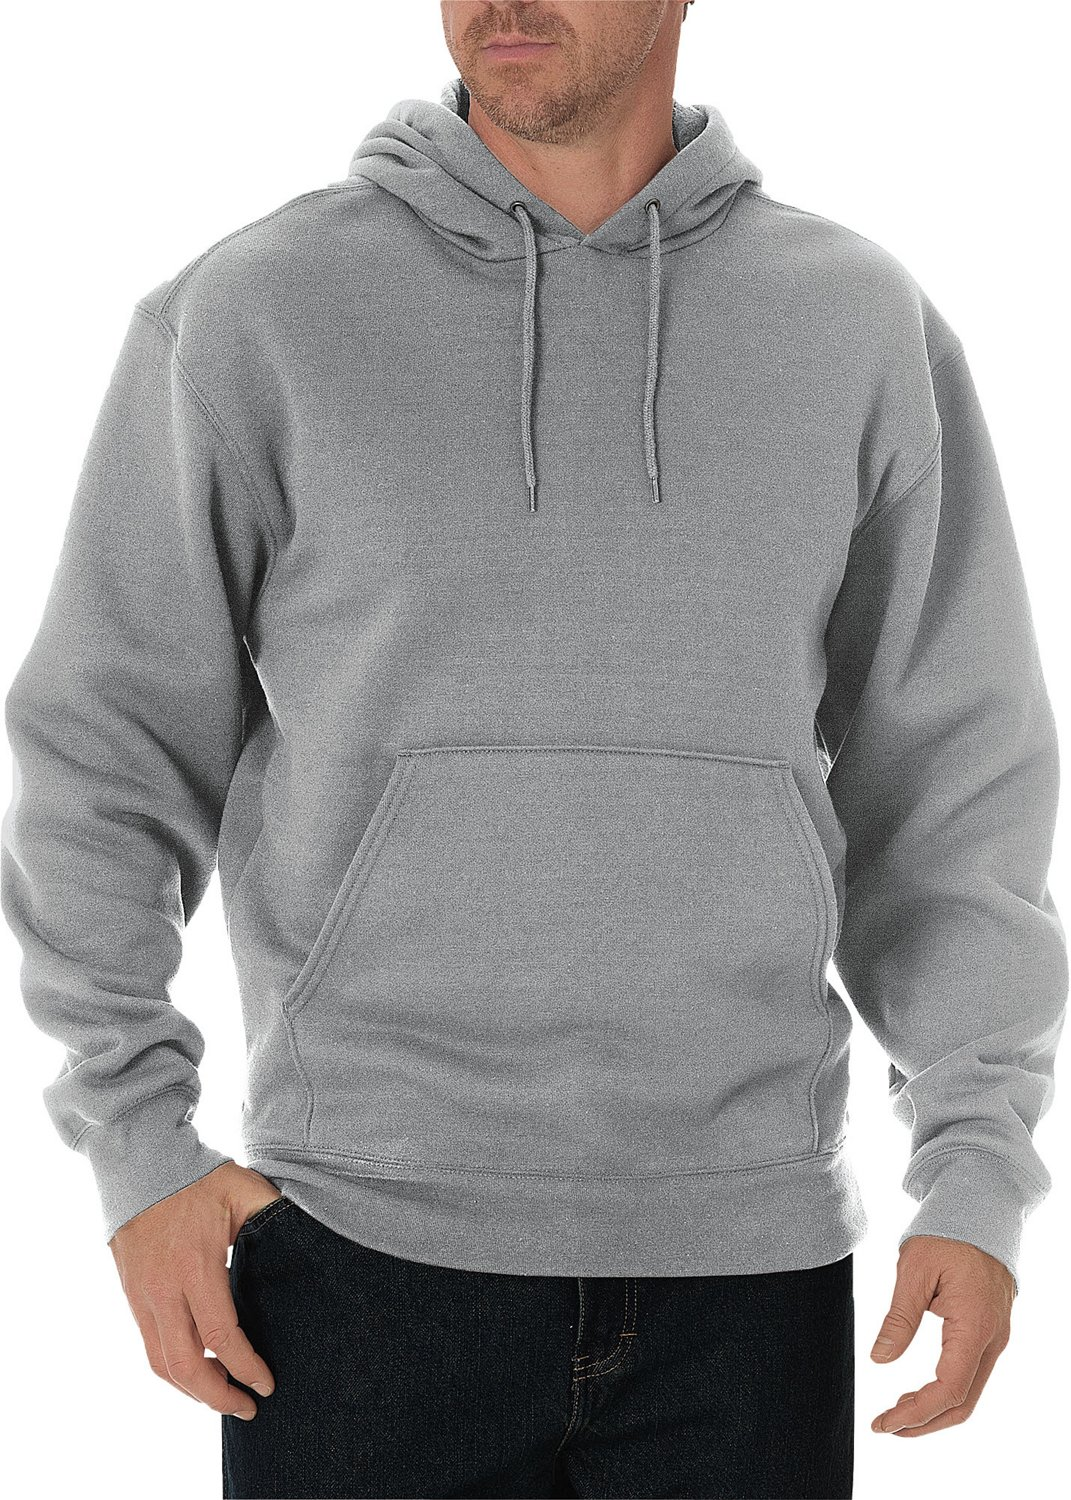 3949ce339 Display product reviews for Dickies Men's Midweight Fleece Pullover Hoodie